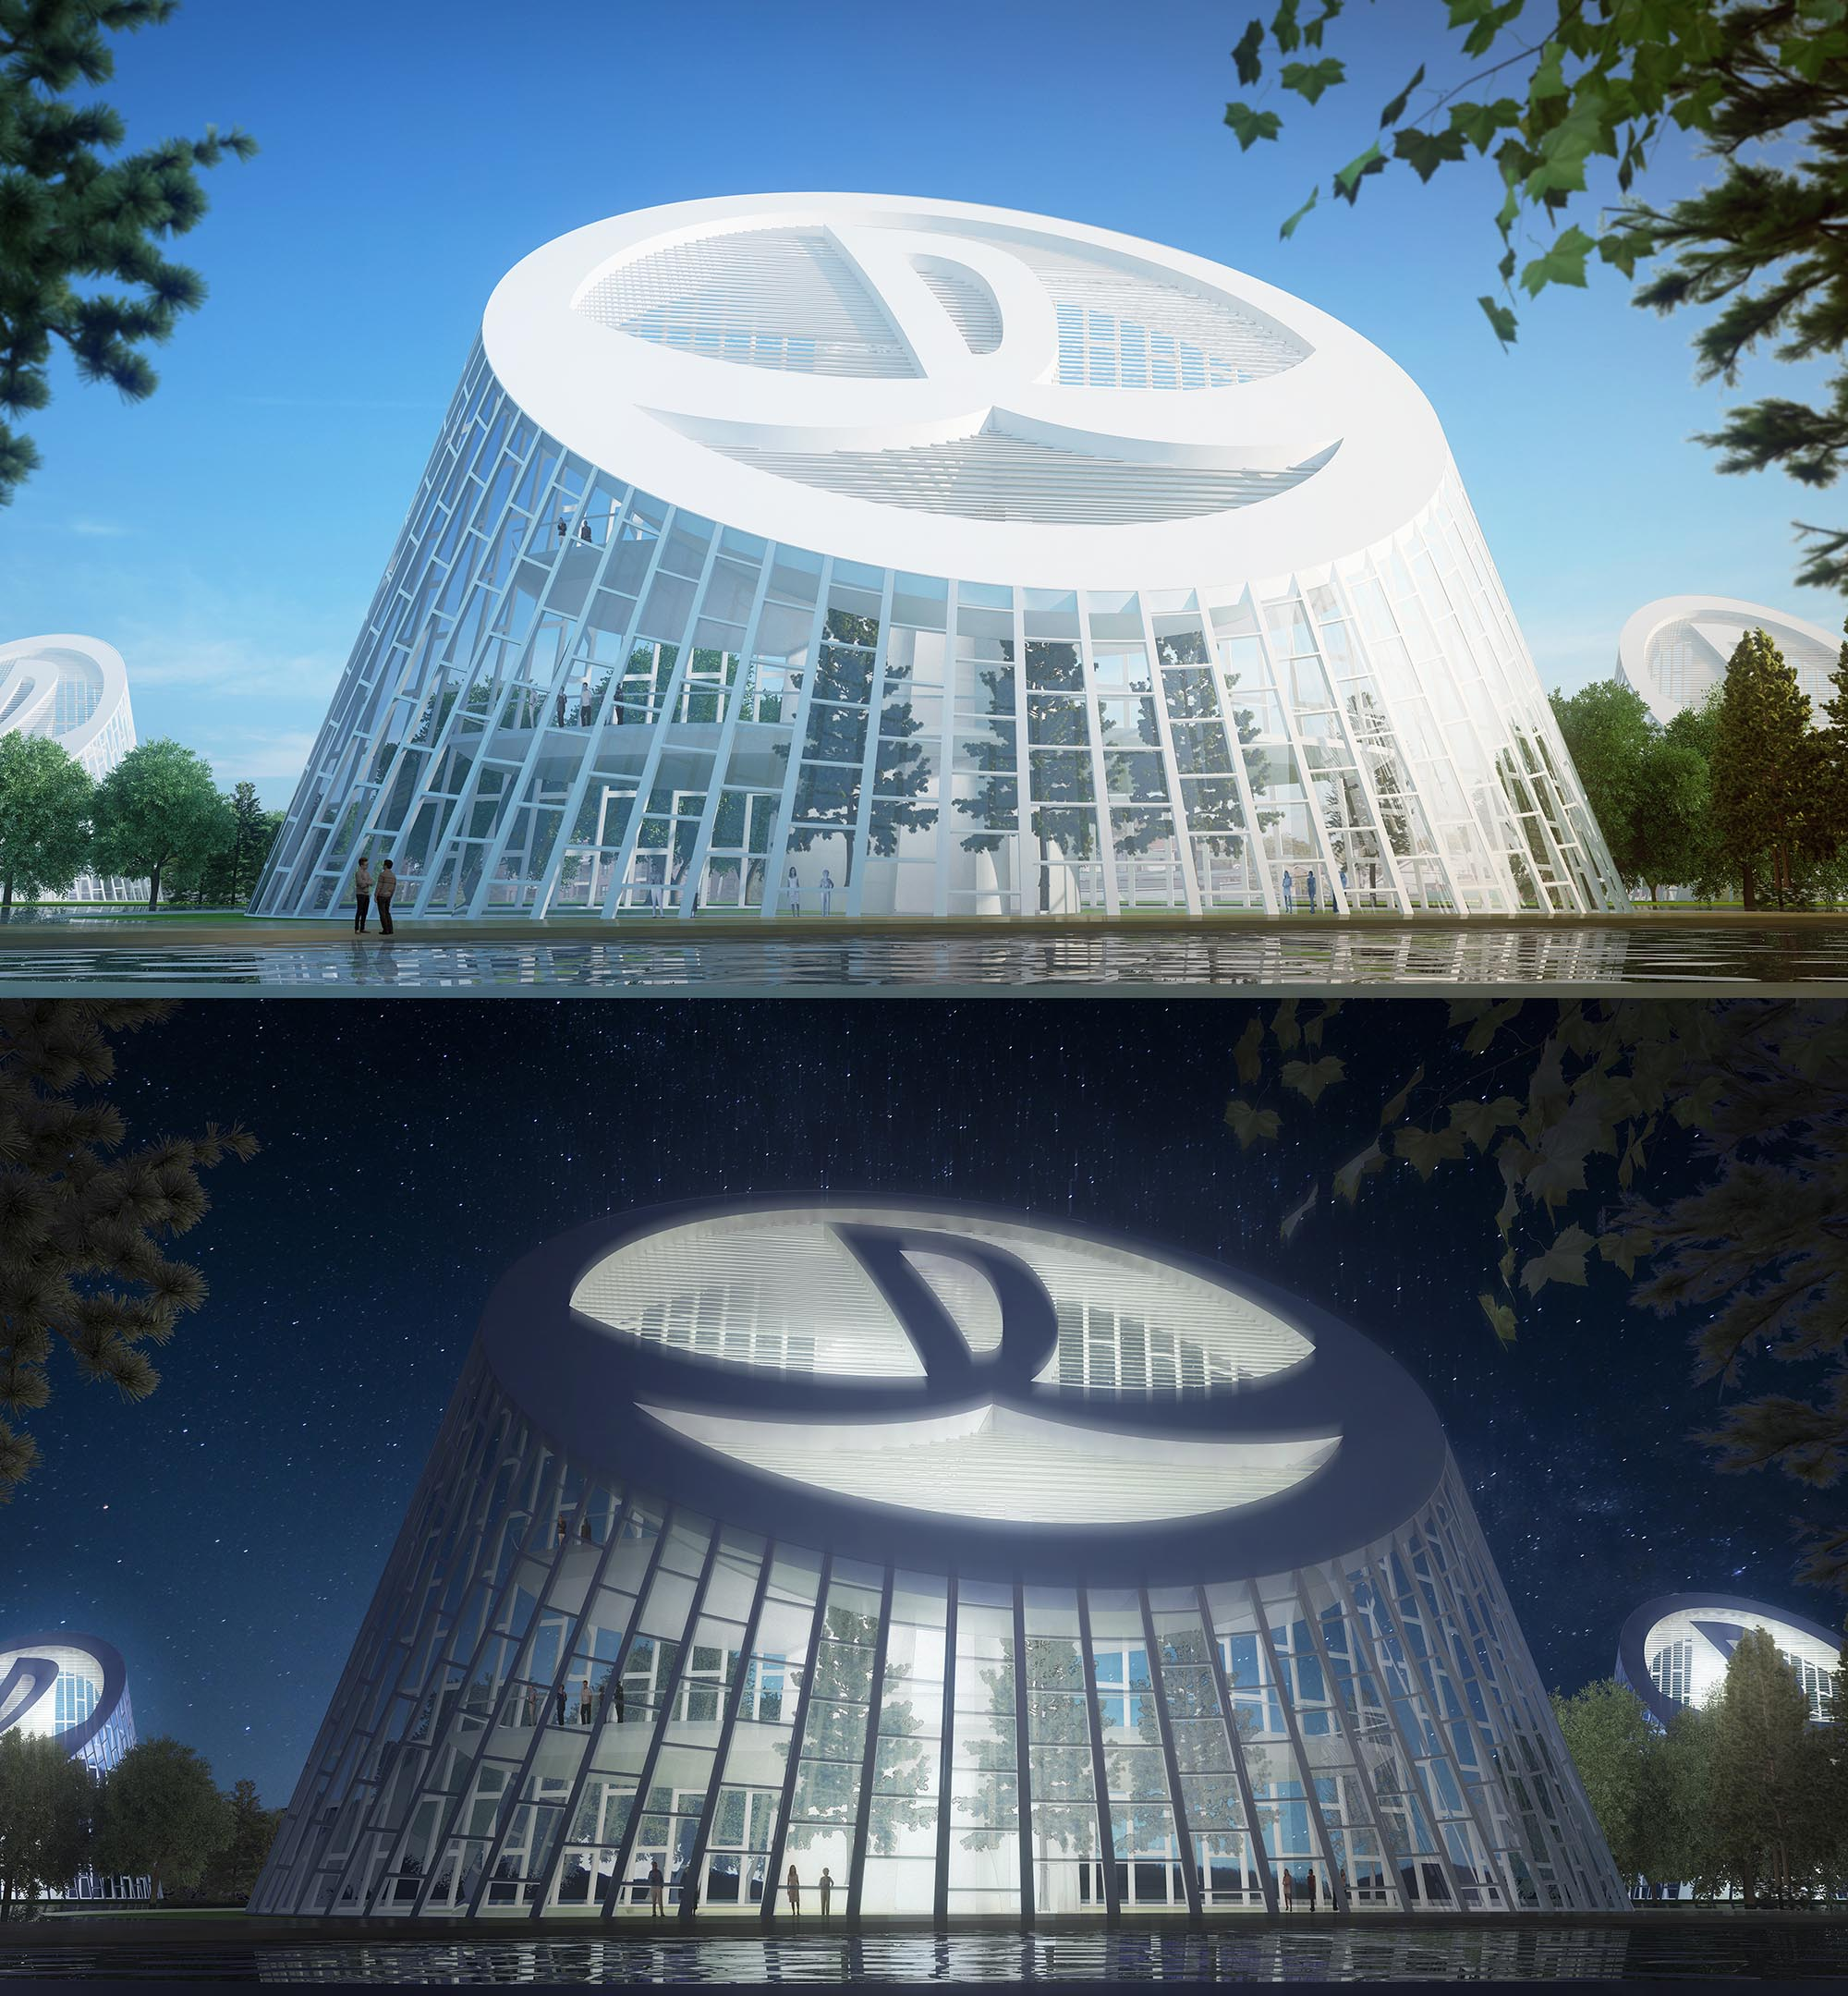 wanda; pavilion; avoid obvious; architecture; green building; futuristic; sustainable; leed; design